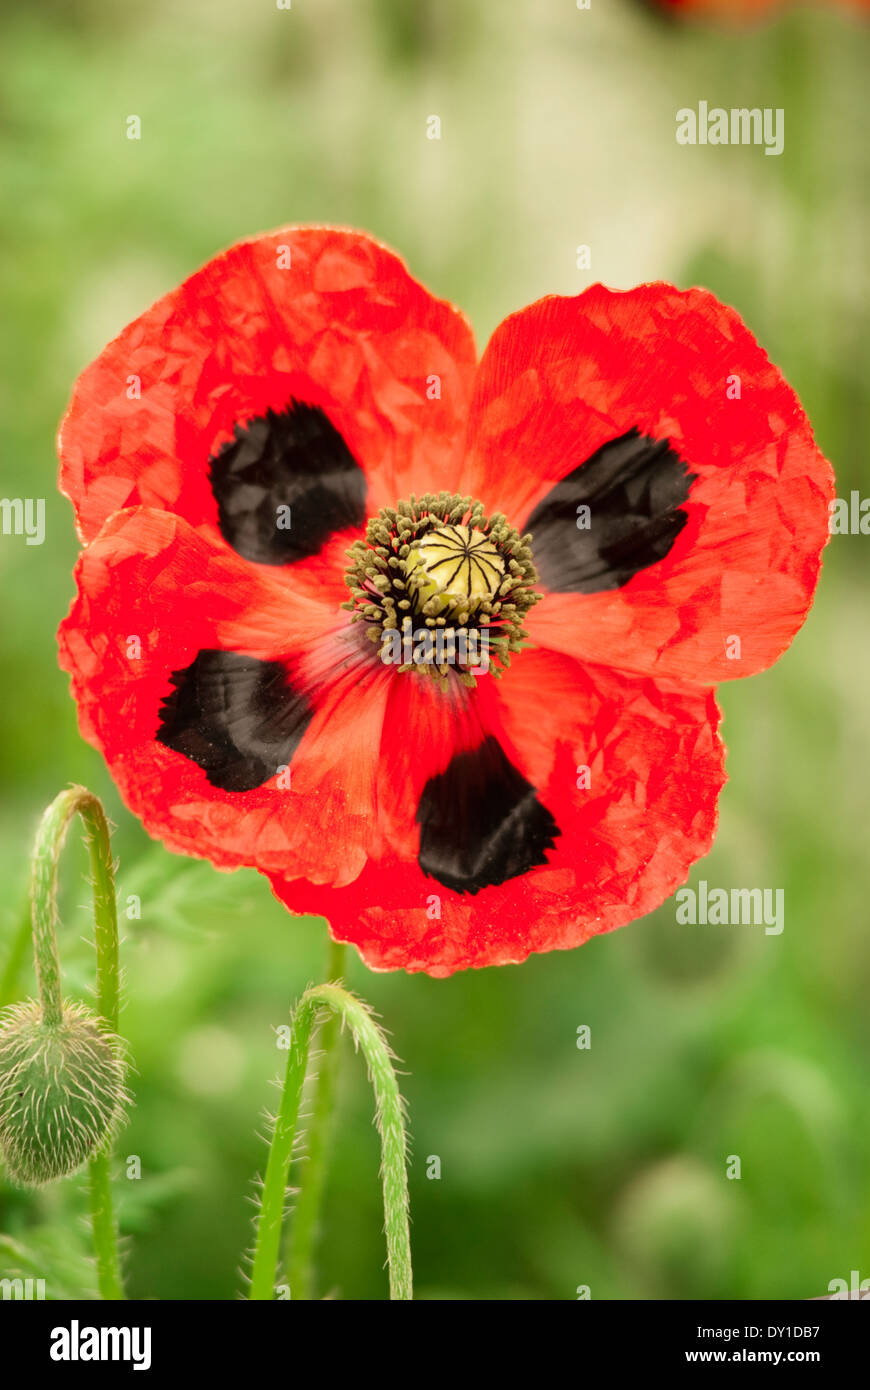 Papaver commutatum, Perennial, May Red flower with distinctive black markings. - Stock Image